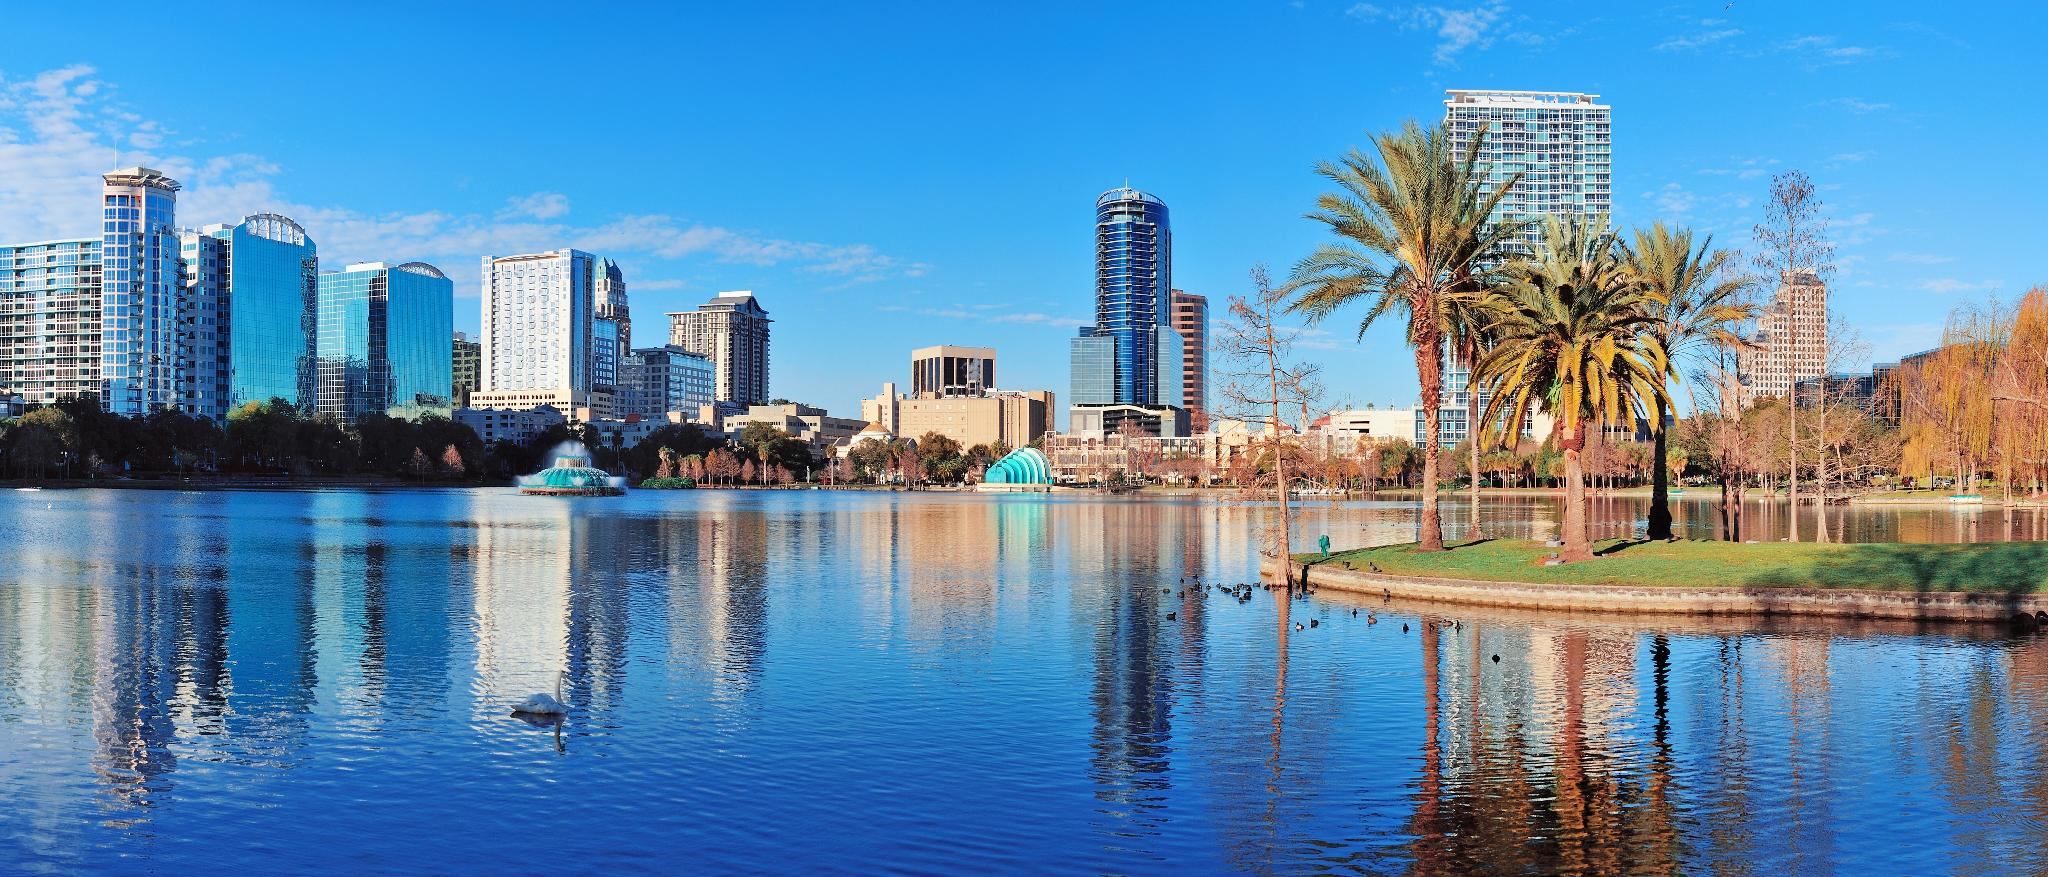 10 Best Orlando (FL) Hotels: HD Photos + Reviews of Hotels ...